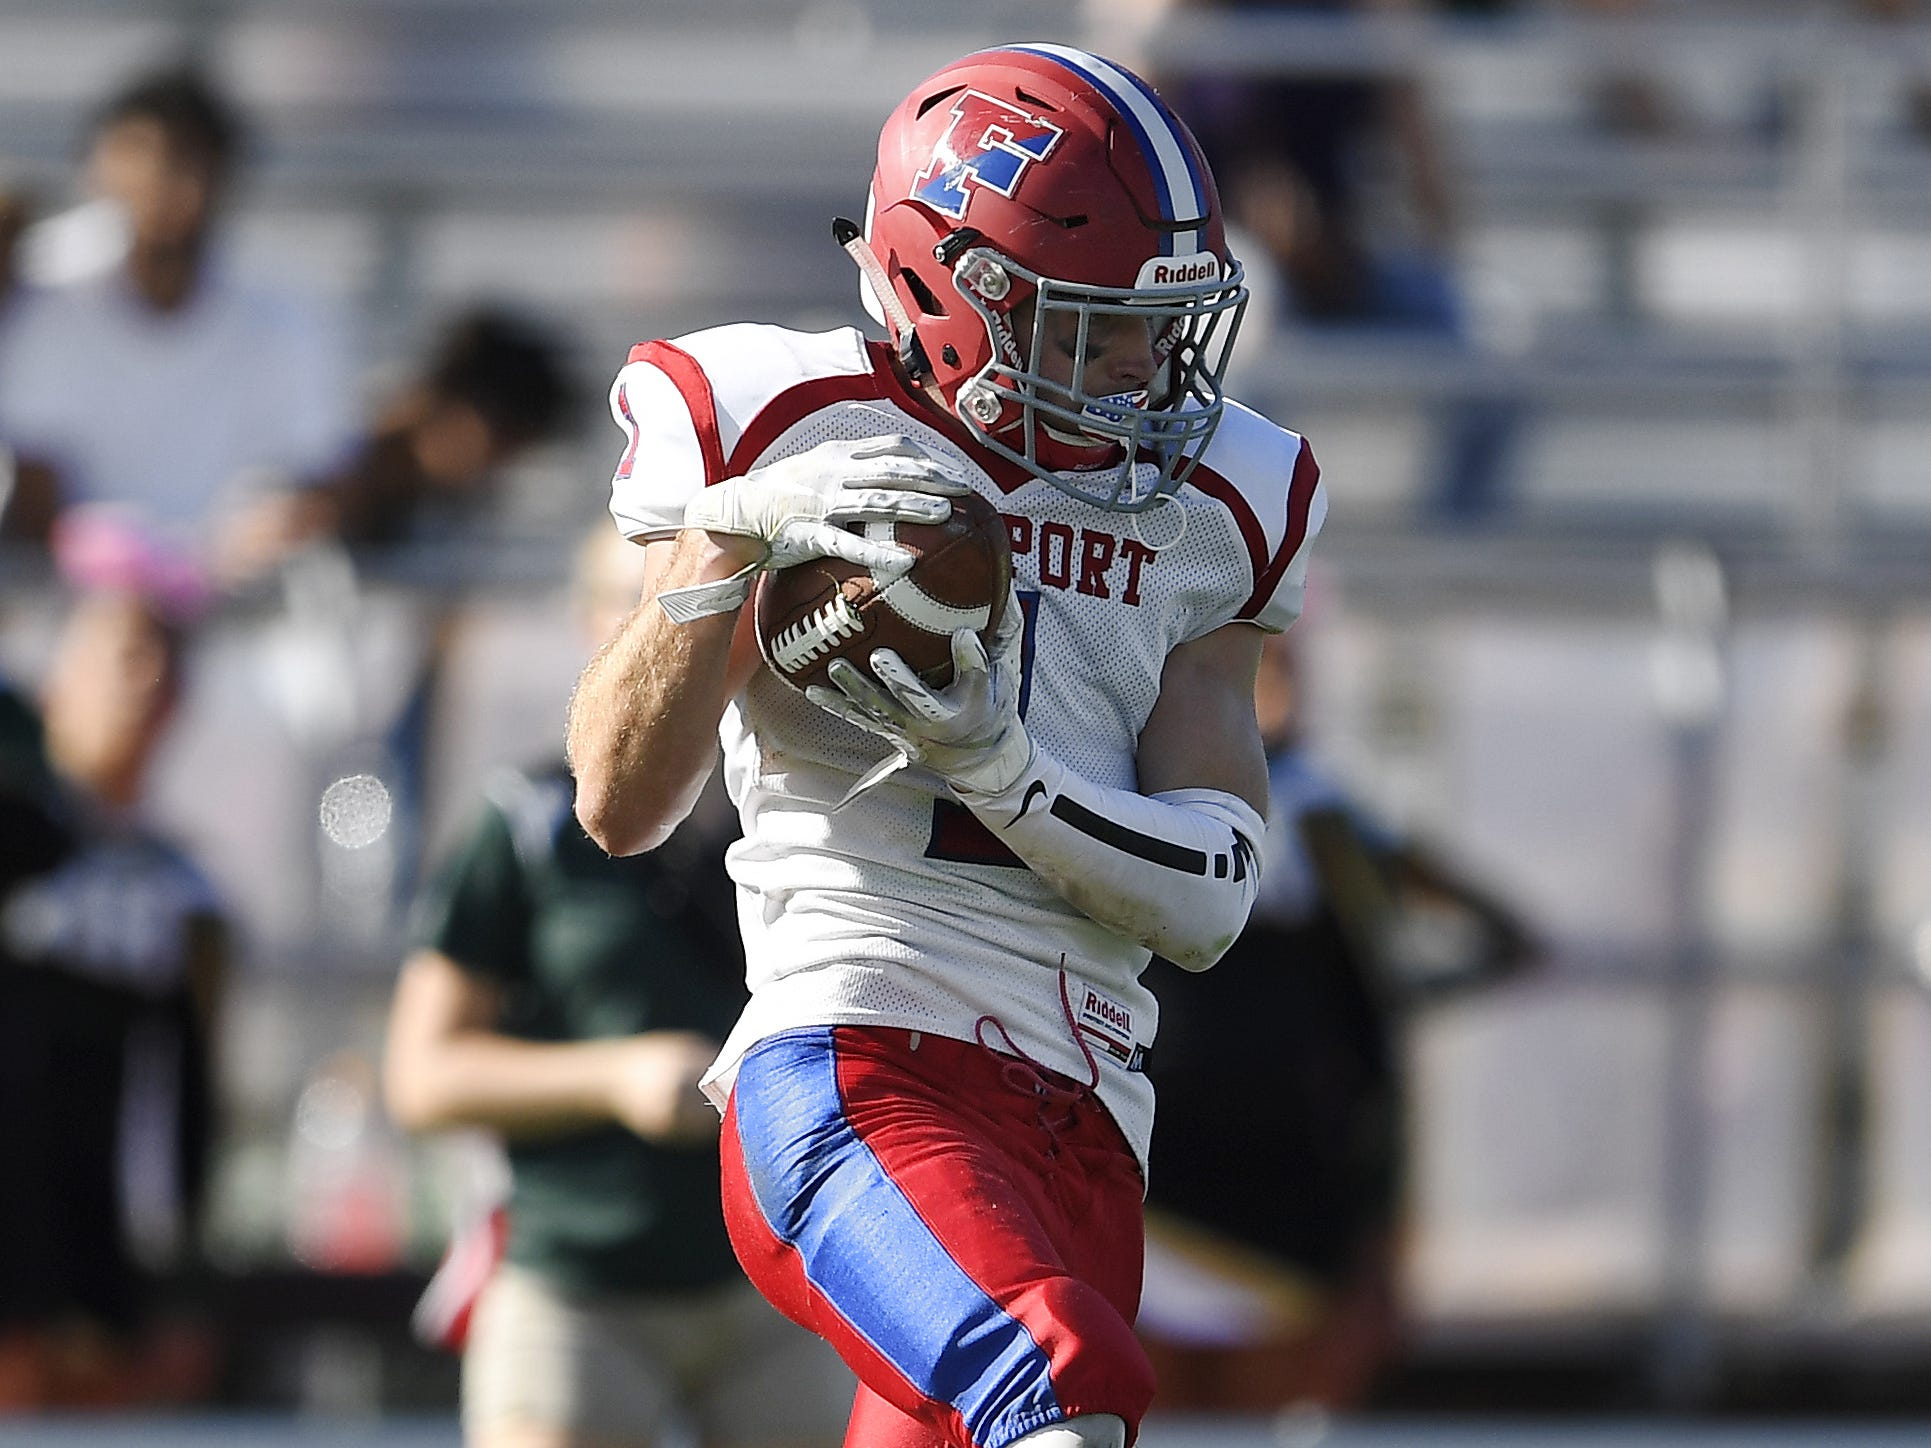 Fairport's Gavin Carlson intercepts a pass late in the game at Rush-Henrietta High School on Saturday, Sept. 15, 2018.